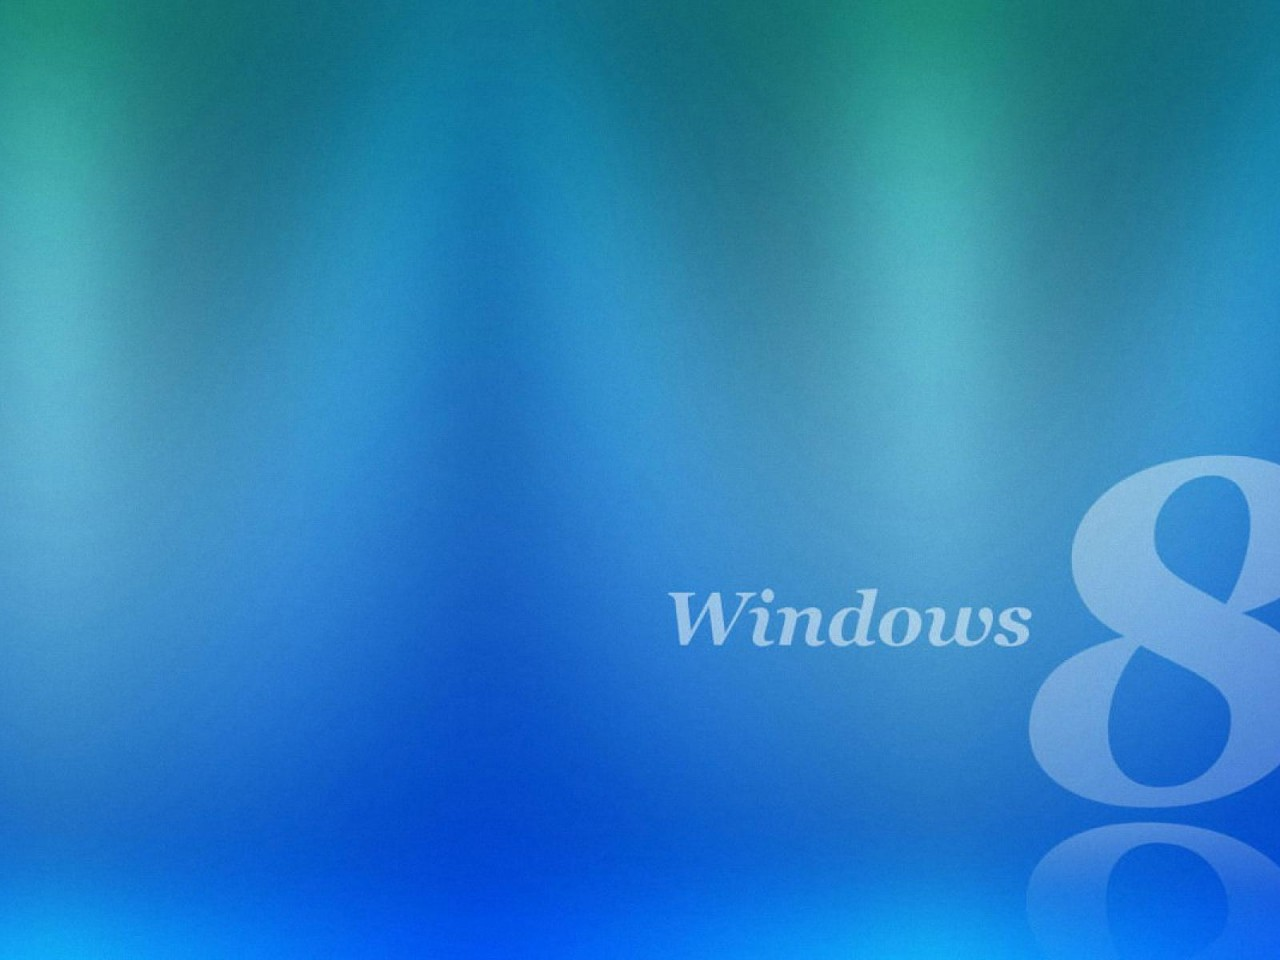 Image gallery for windows classic wallpaper 1280x960